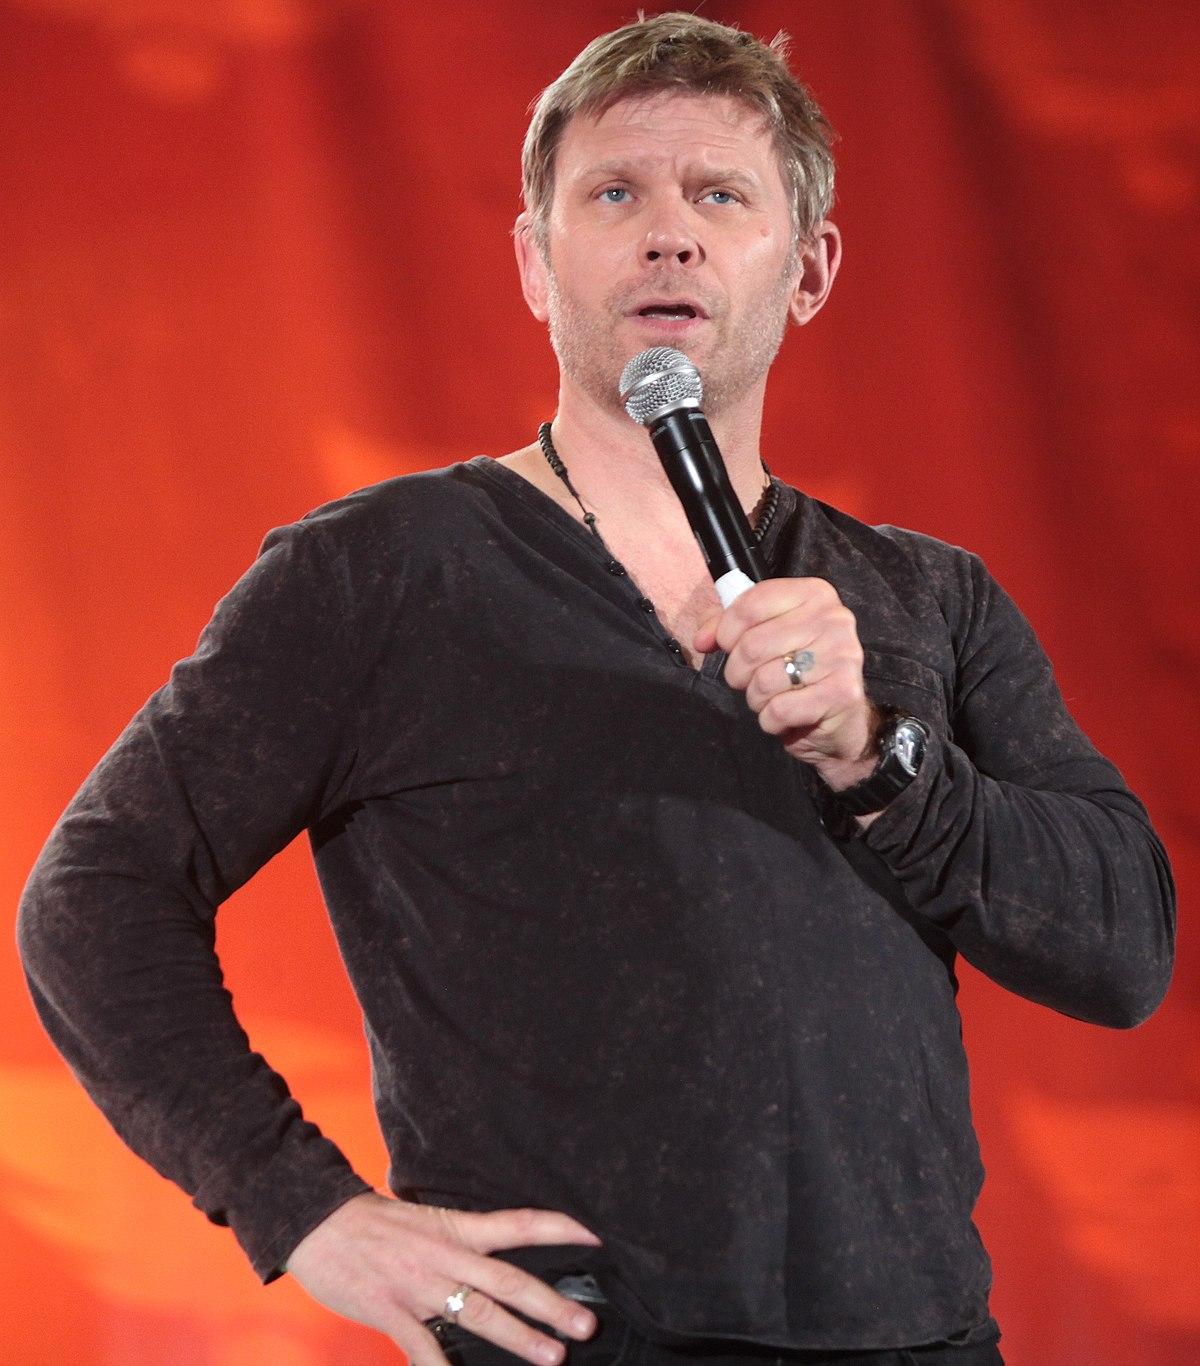 mark pellegrino is backmark pellegrino gif, mark pellegrino age, mark pellegrino and jared padalecki, mark pellegrino sweet transvestite, mark pellegrino tracy aziz, mark pellegrino vampire diaries, mark pellegrino is back, mark pellegrino insta, марк пеллегрино декстер, mark pellegrino imdb, mark pellegrino daughter, mark pellegrino instagram, mark pellegrino supernatural, mark pellegrino wikipedia, mark pellegrino tumblr gif, mark pellegrino no holds barred, mark pellegrino address, mark pellegrino the returned, mark pellegrino wife